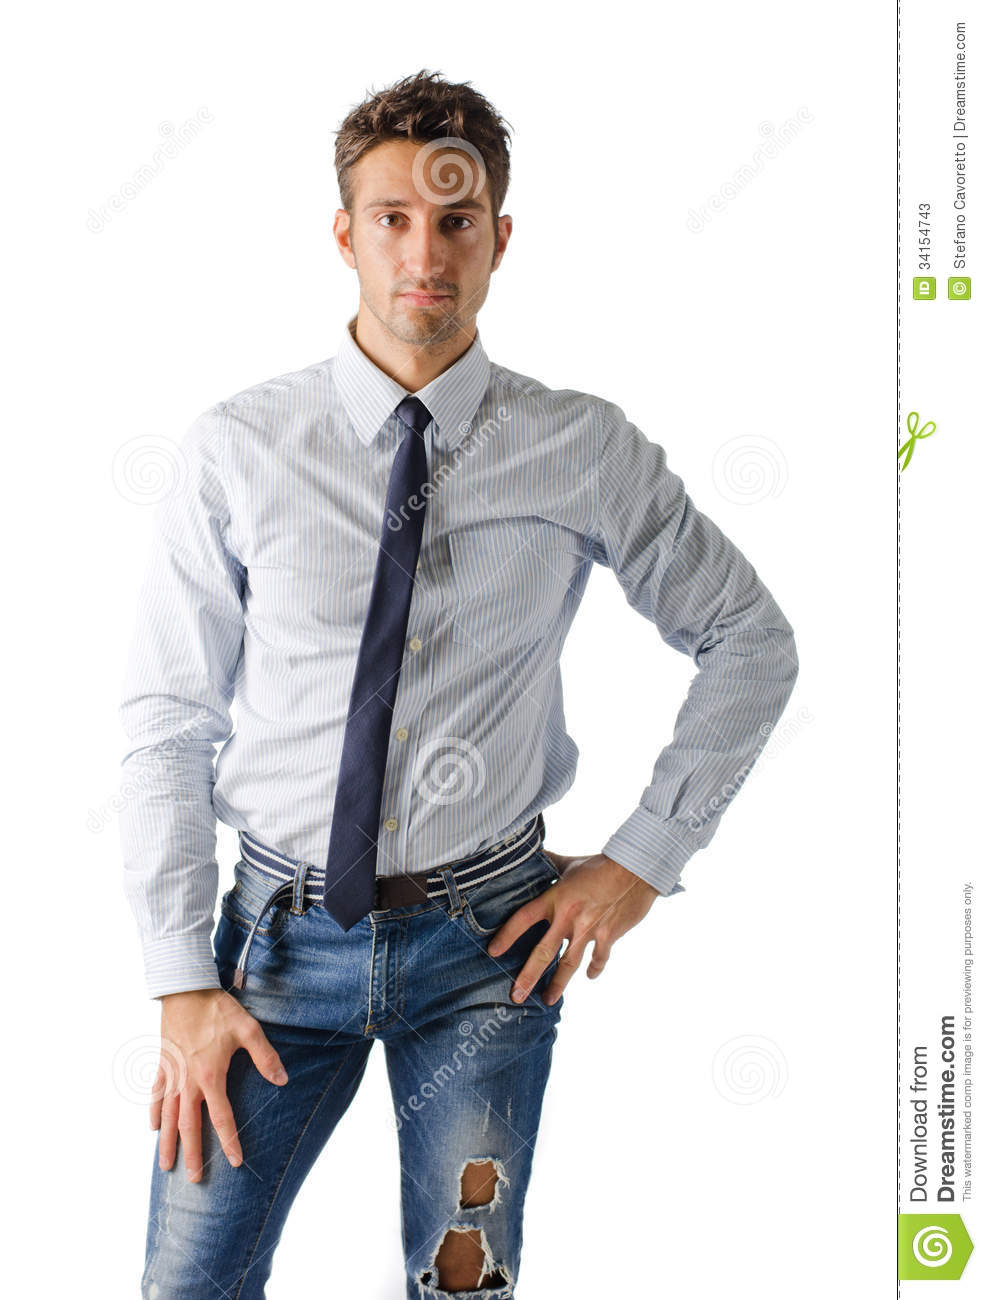 Alternative Young Business Man Wearing Shirt Tie And Ripped Jeans Stock Photos - Image 34154743